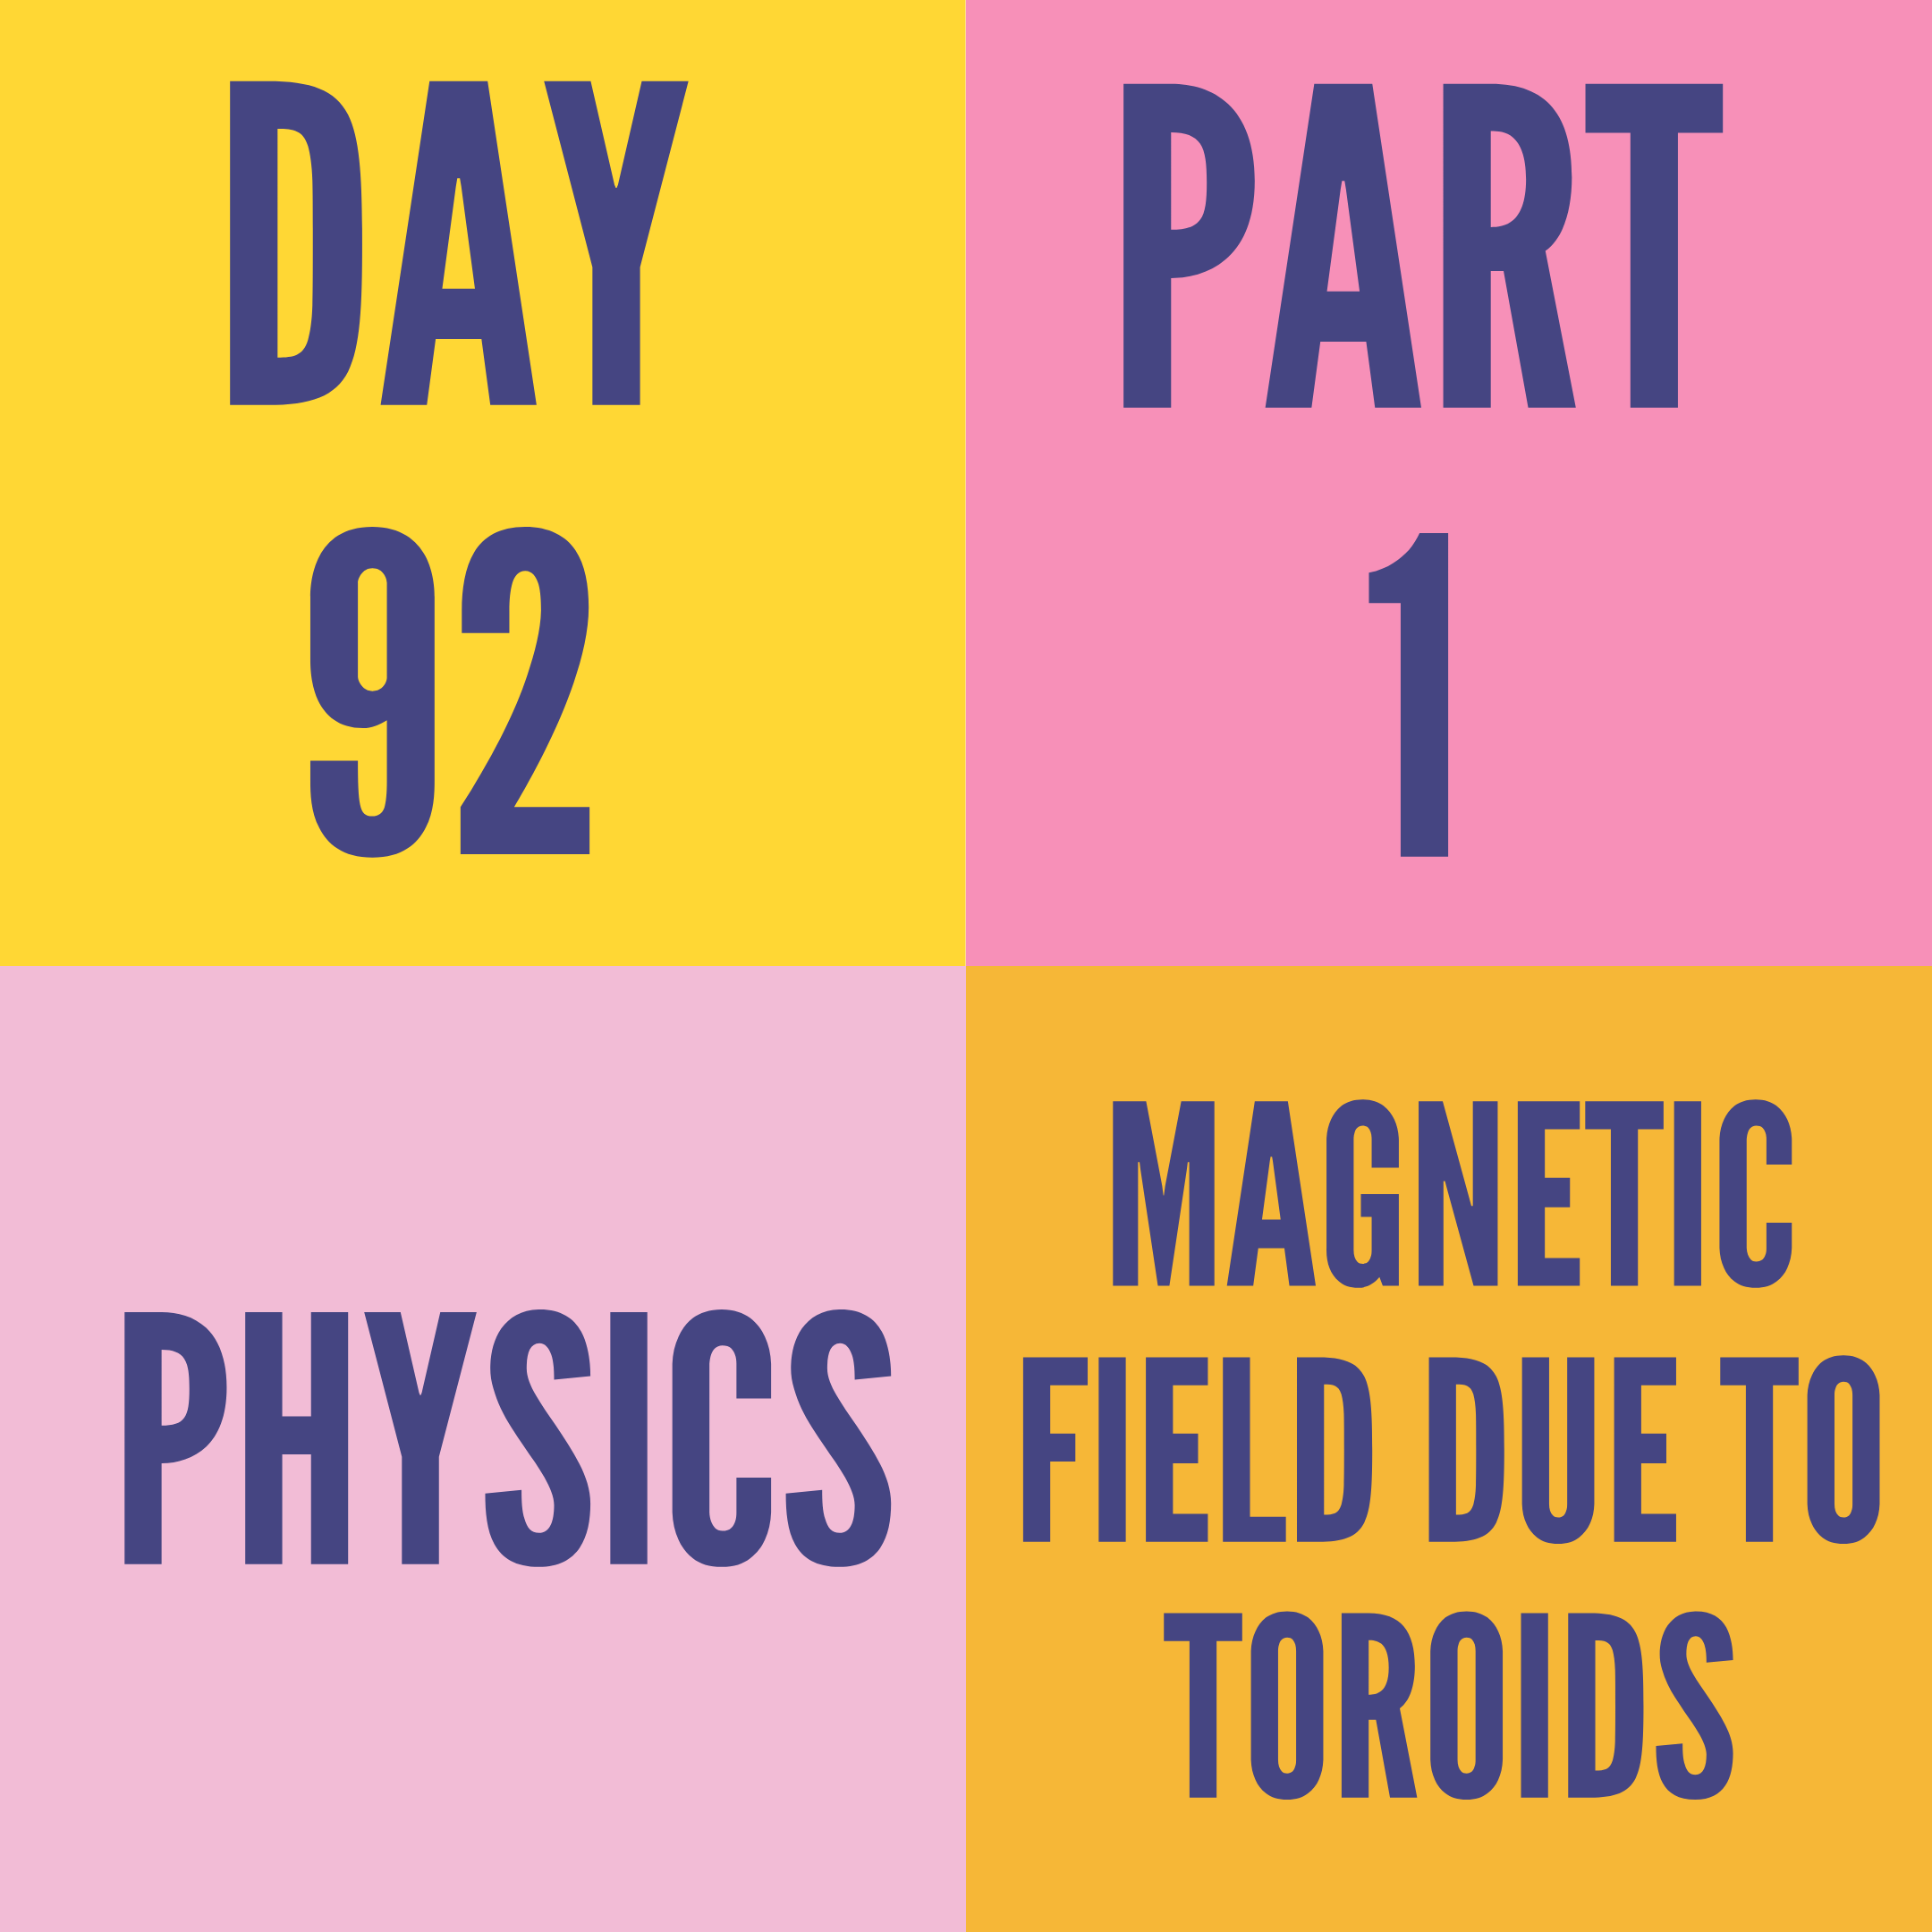 DAY-92 PART-1 MAGNETIC FIELD DUE TO TOROIDS